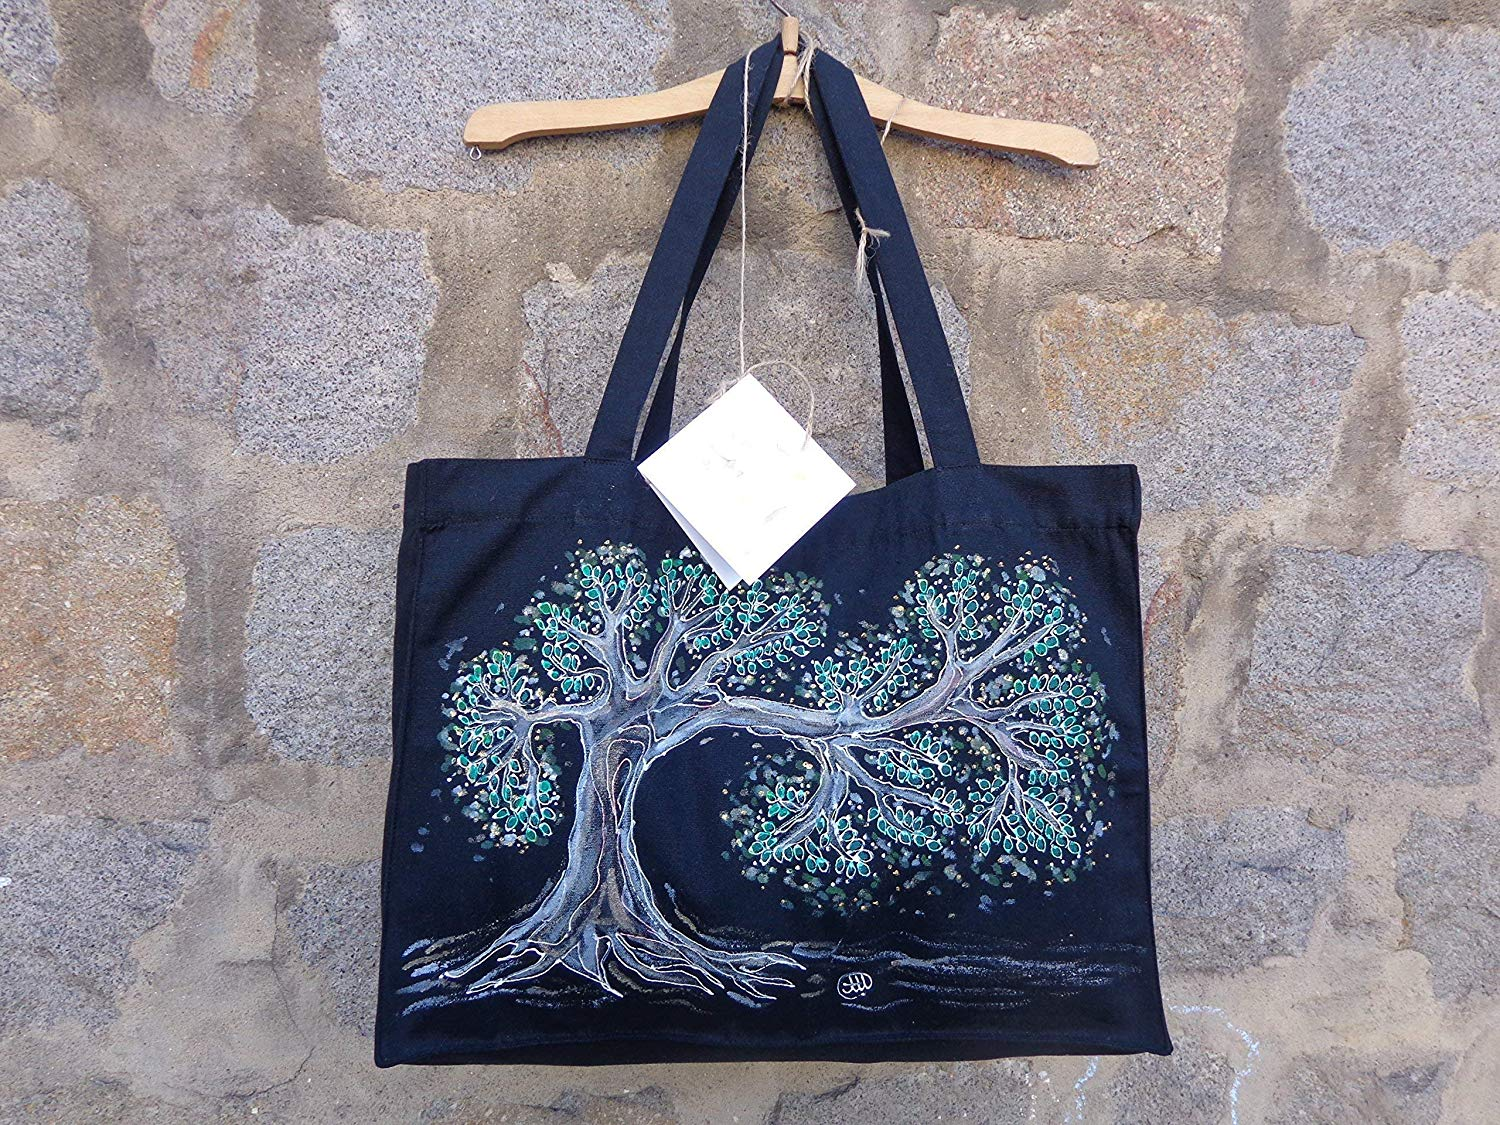 Sale!!!15% Off,Tree of Desires,Tree of Life Illustration Eko Tote Bag,Hand Painted organic cotton tote bag,Acrylic Painted Tree of Life,Black Tote Bag.